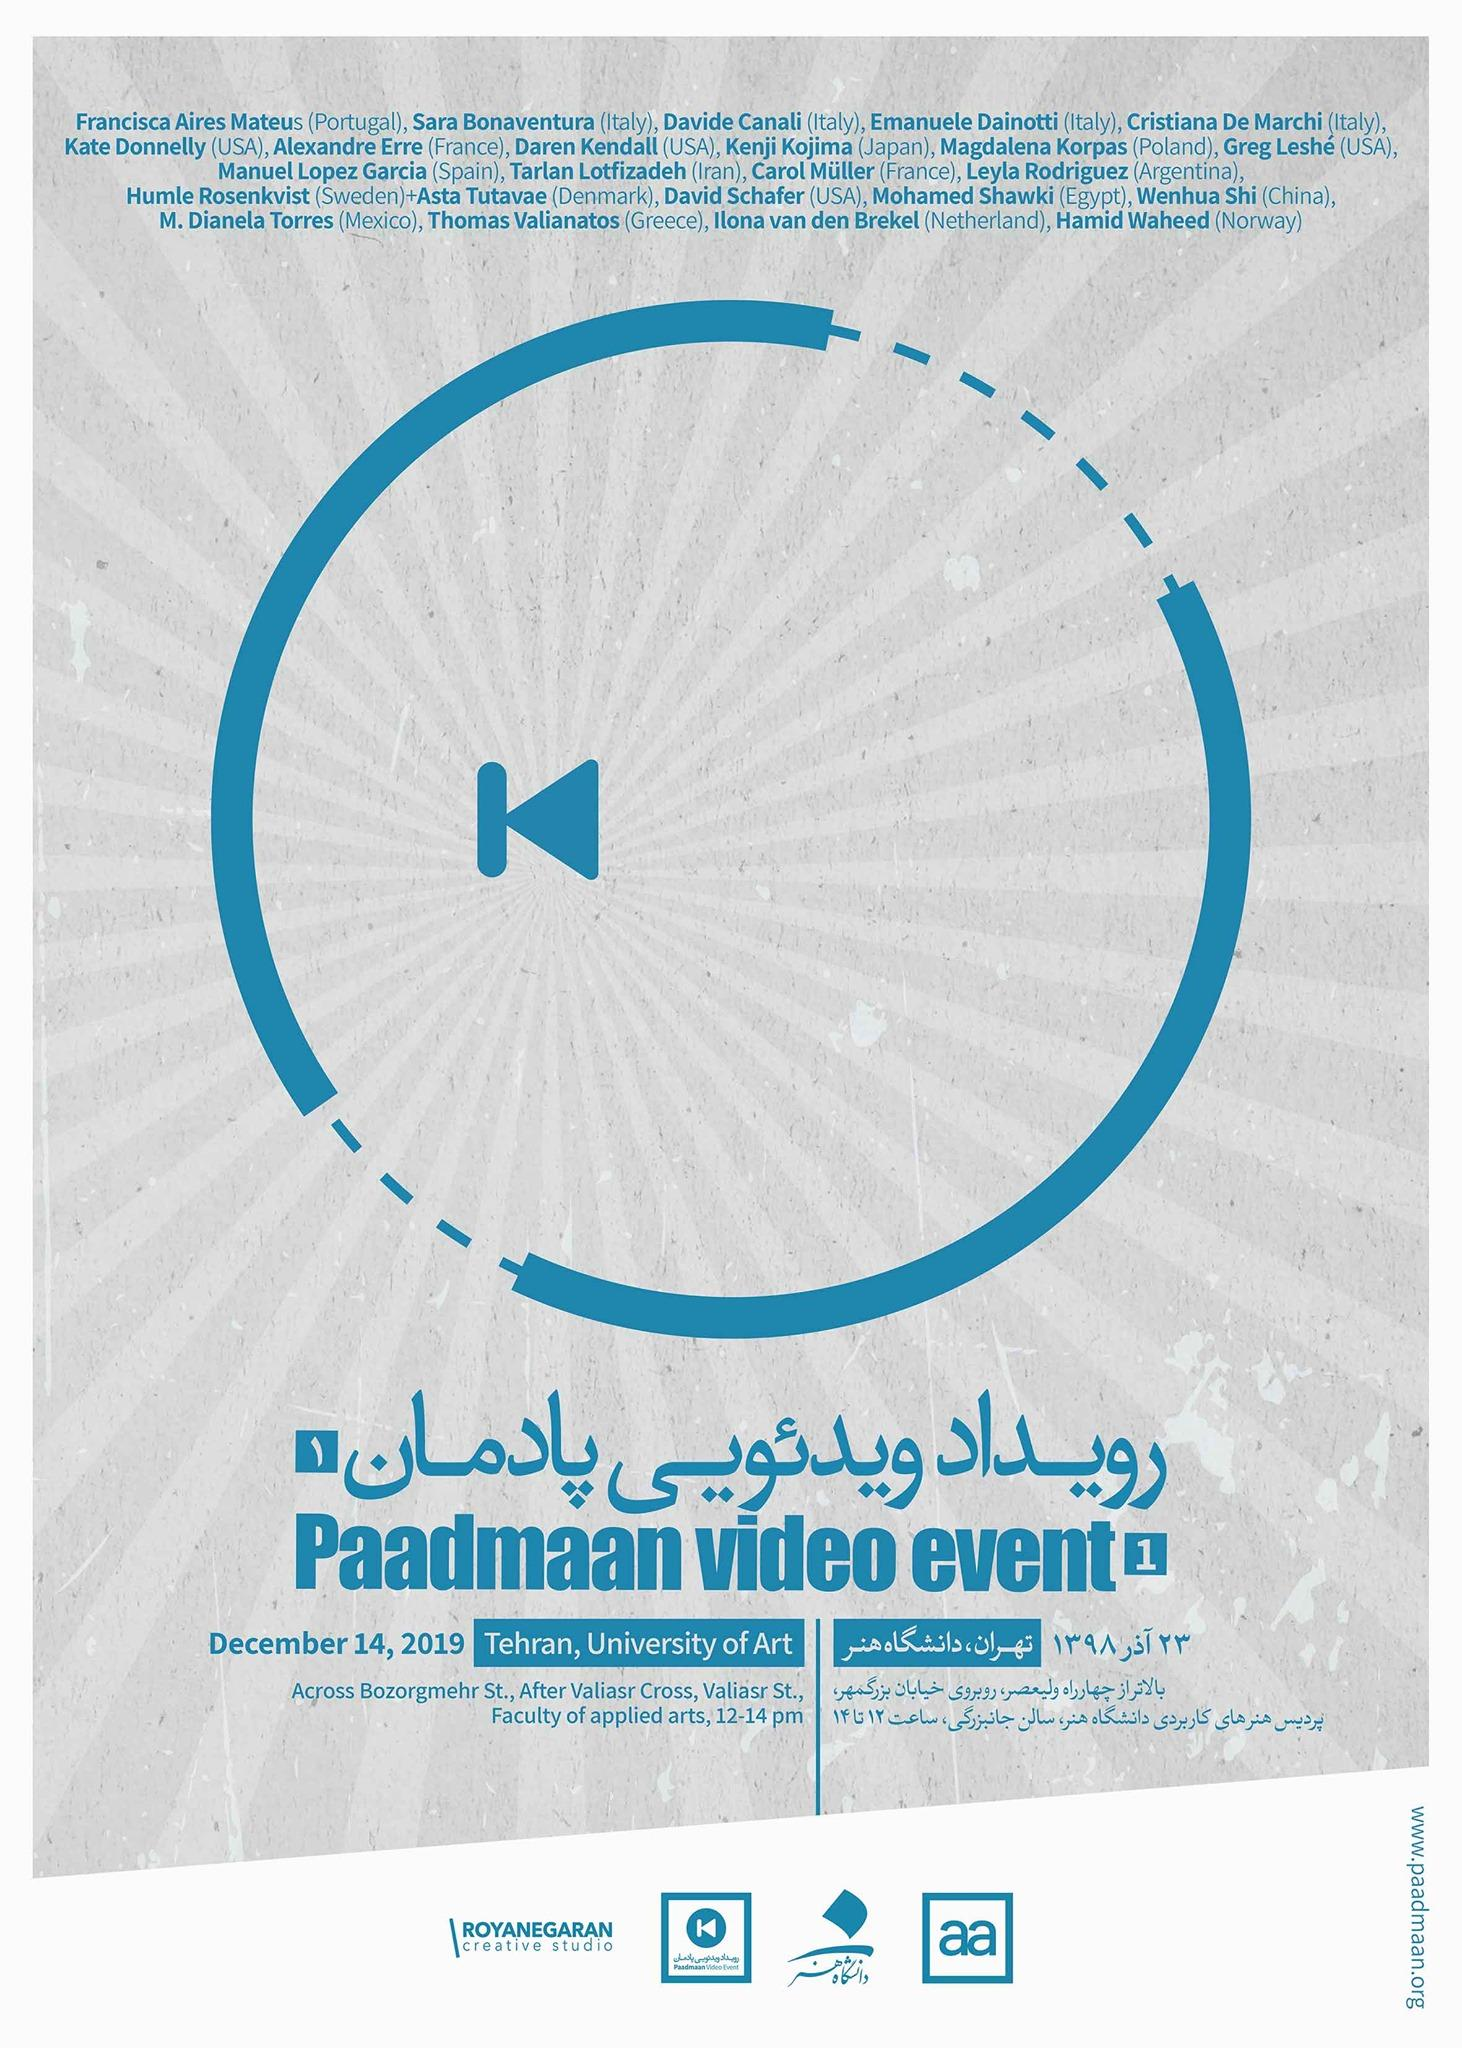 leyla rodriguez, Homeless @ the Screening Paadmaan Video Event 2019 at Tehran University of Art, December 14., Tehran/ IRAN